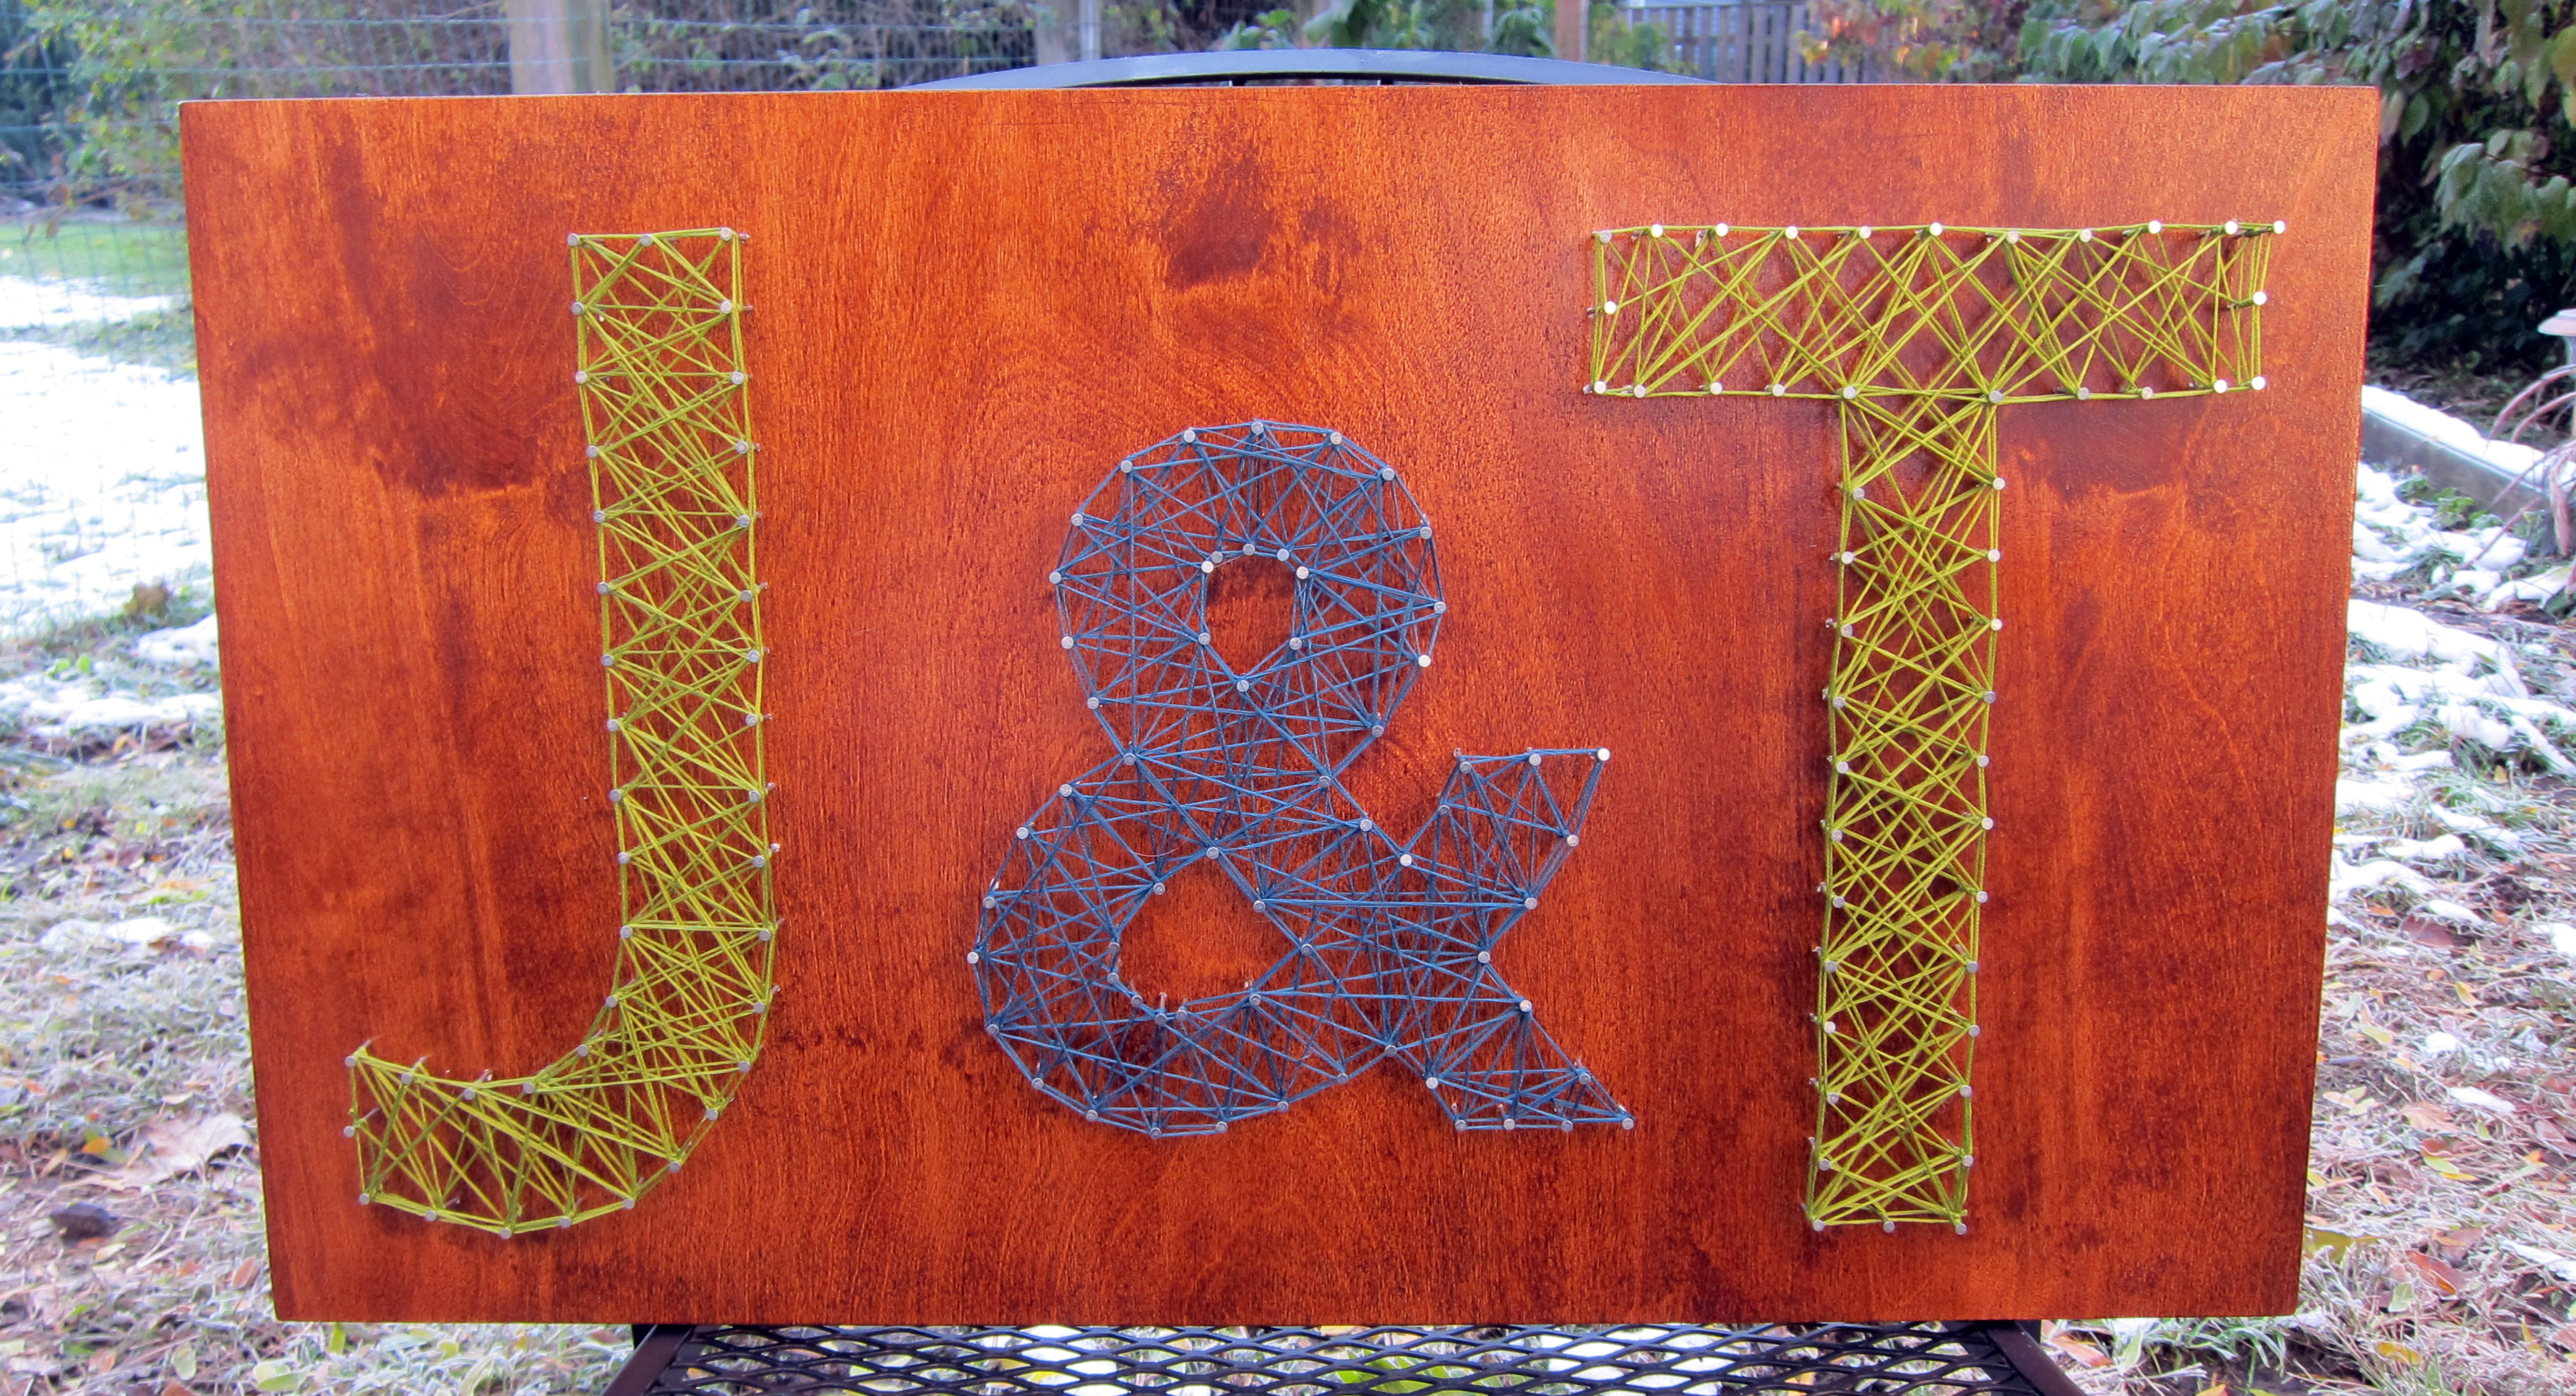 35 diy string art patterns guide patterns. Black Bedroom Furniture Sets. Home Design Ideas